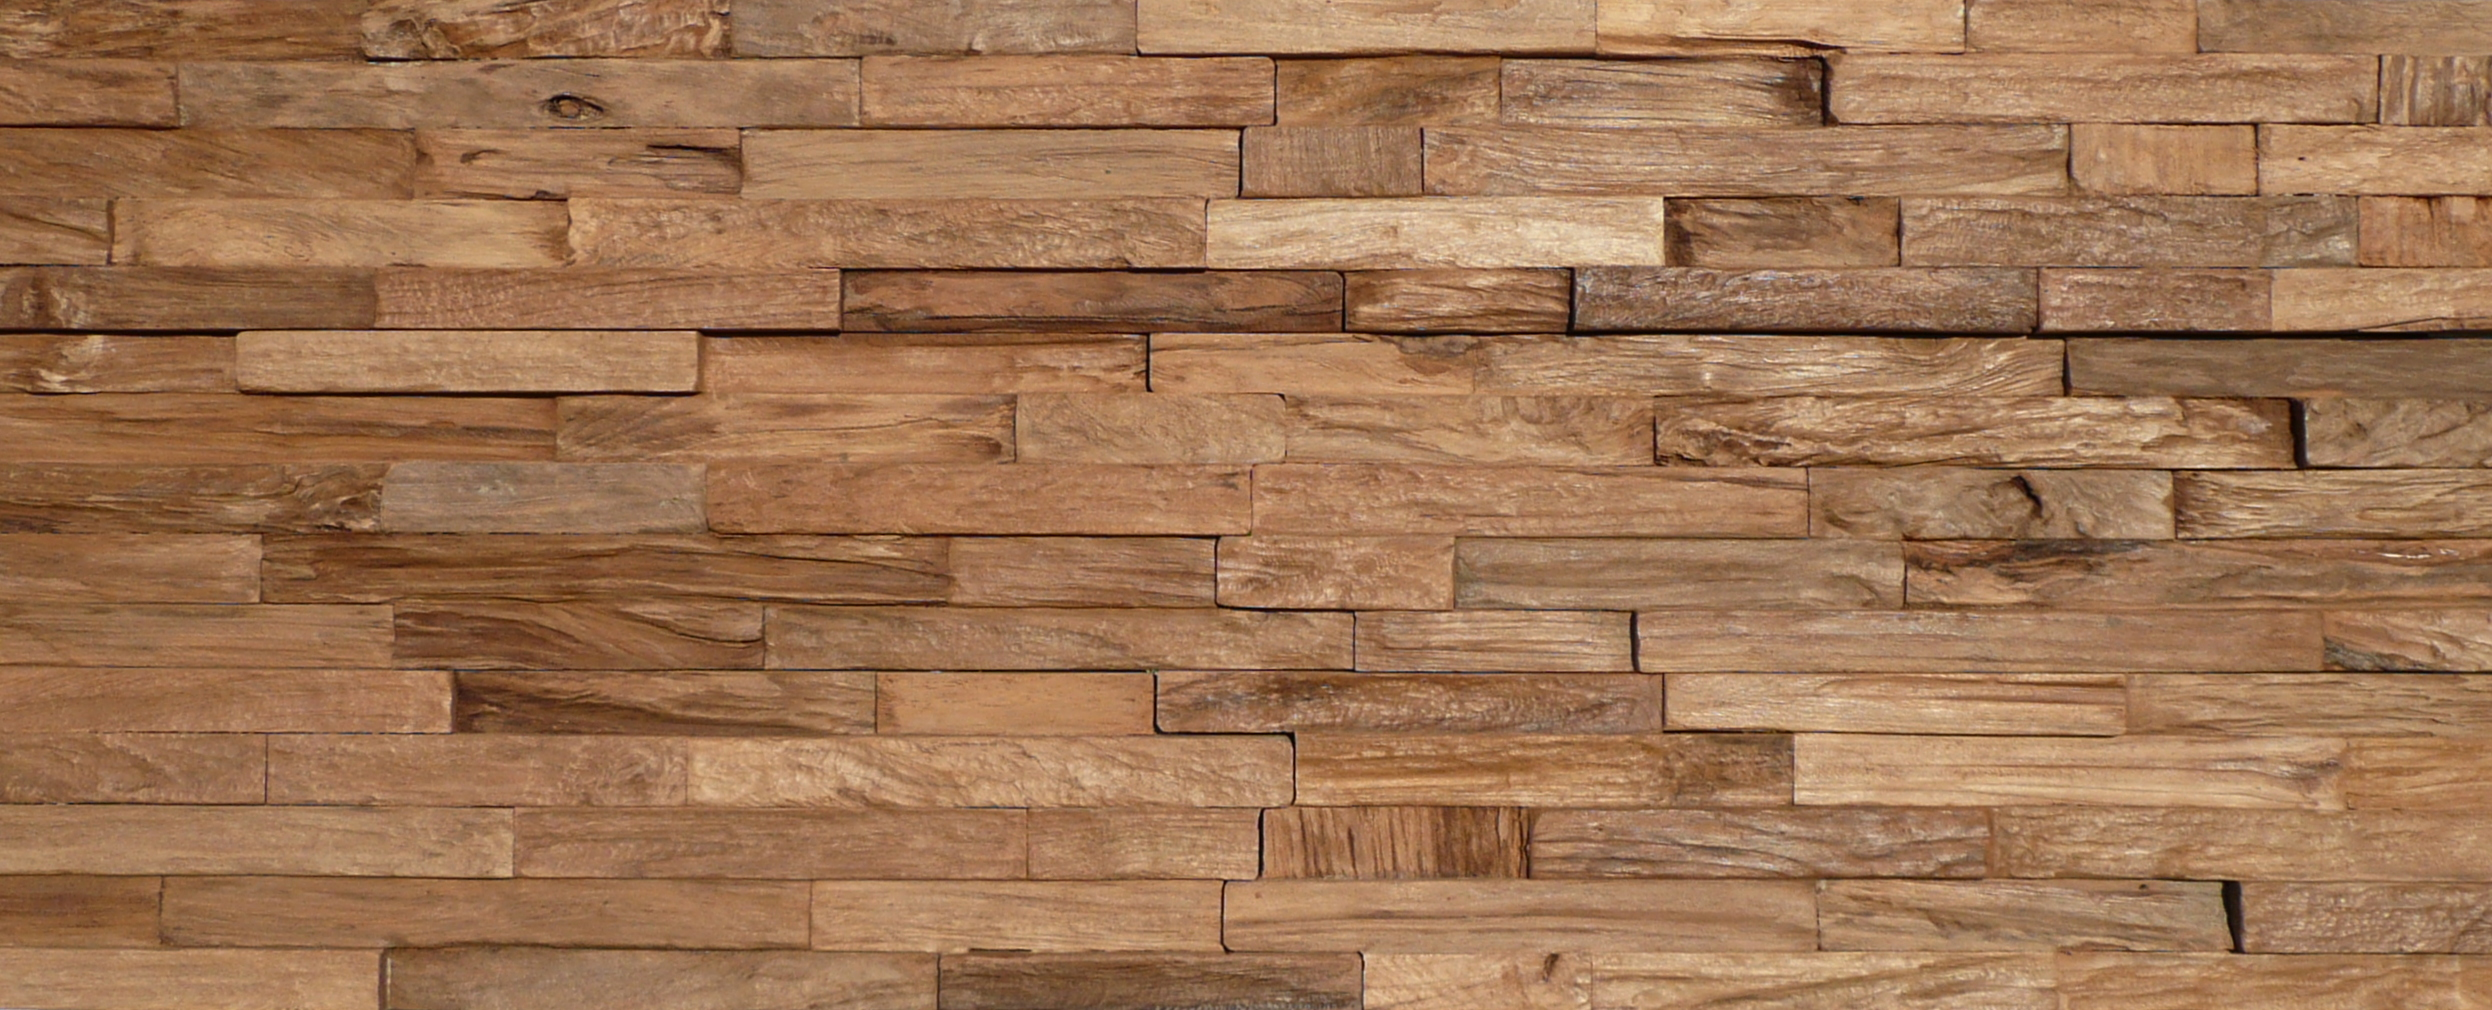 wooden wall panels wall paneling ideas for office in